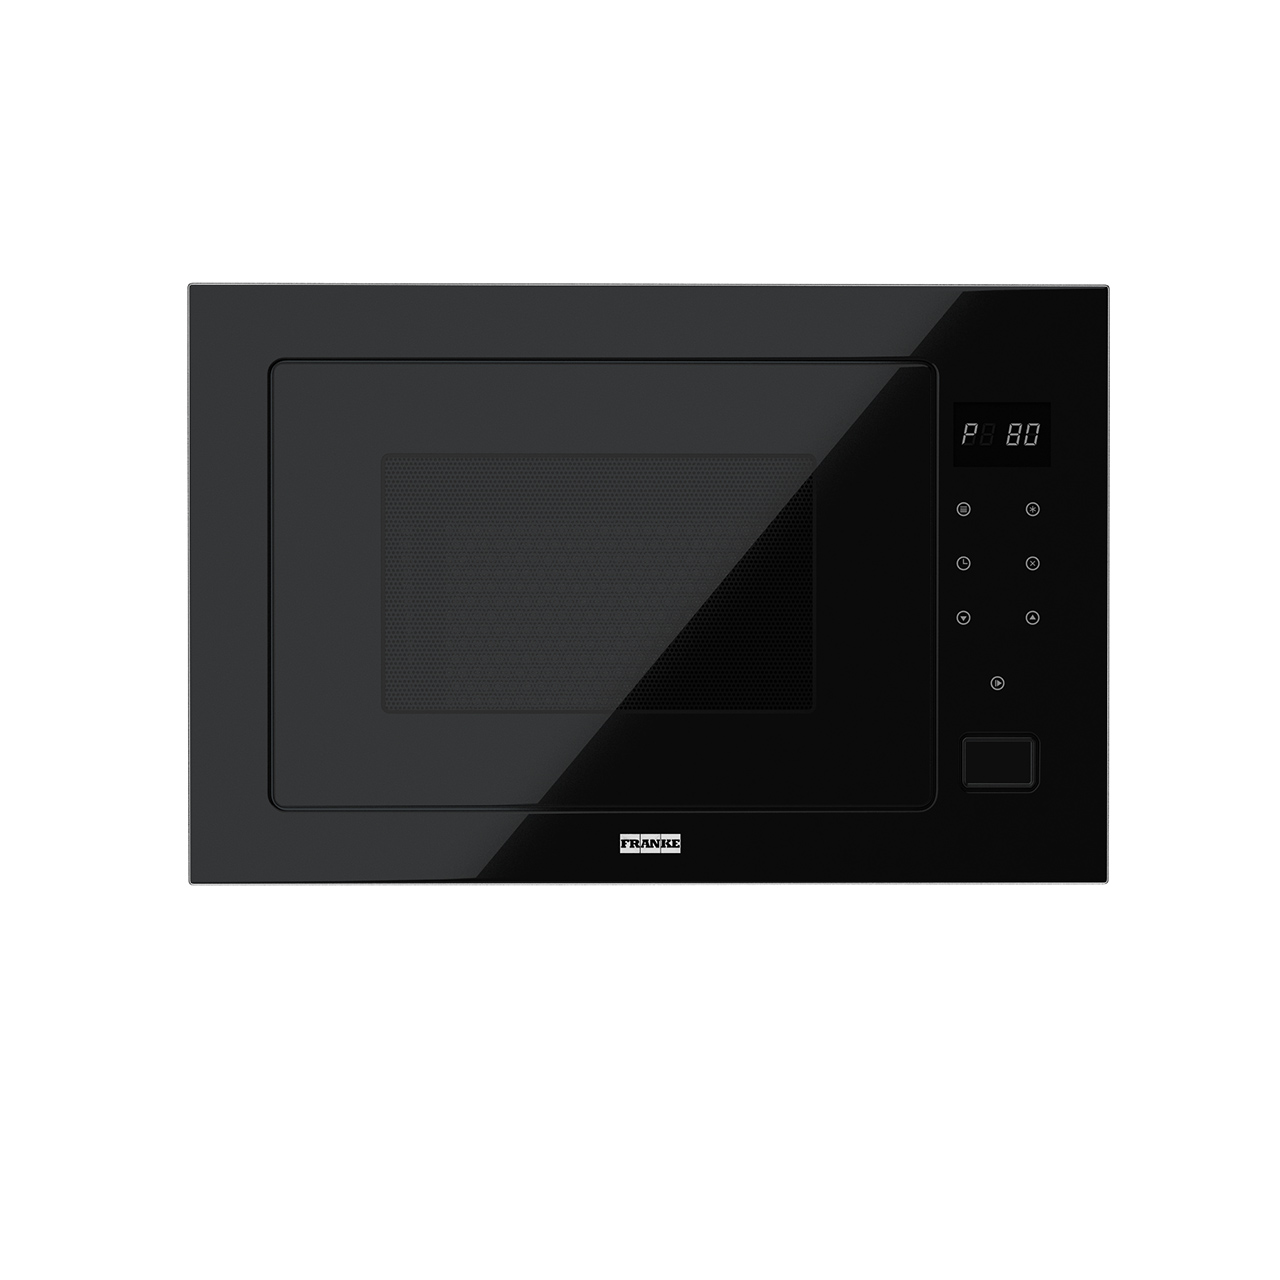 Microwave FMW 250 CR2 G BK by Franke